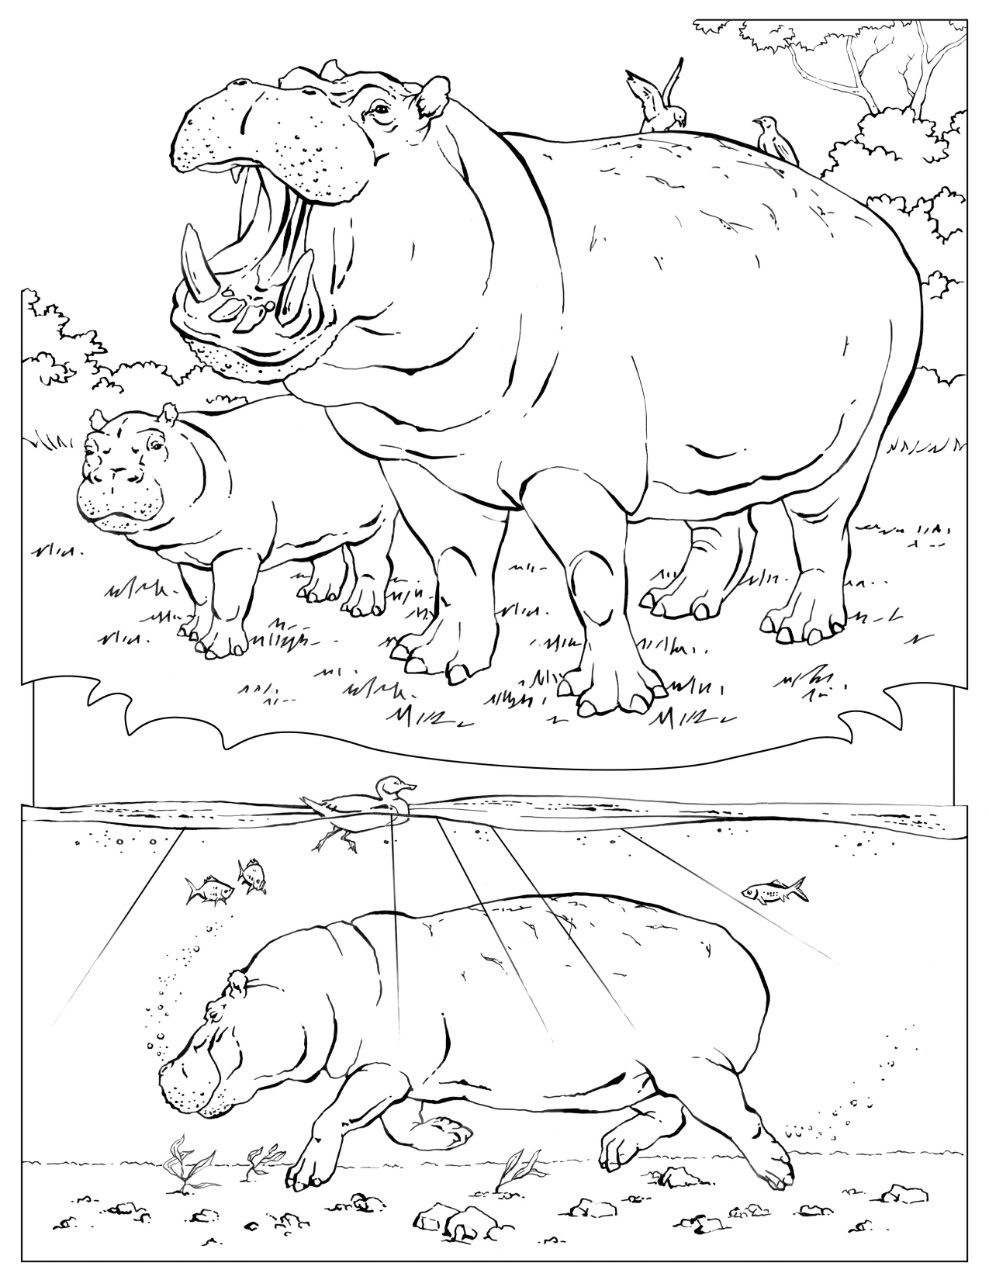 Hippopotamus hippo coloring page animals town animals color - Find This Pin And More On Hippos National Geographic Coloring Pages Coloring Book Animals